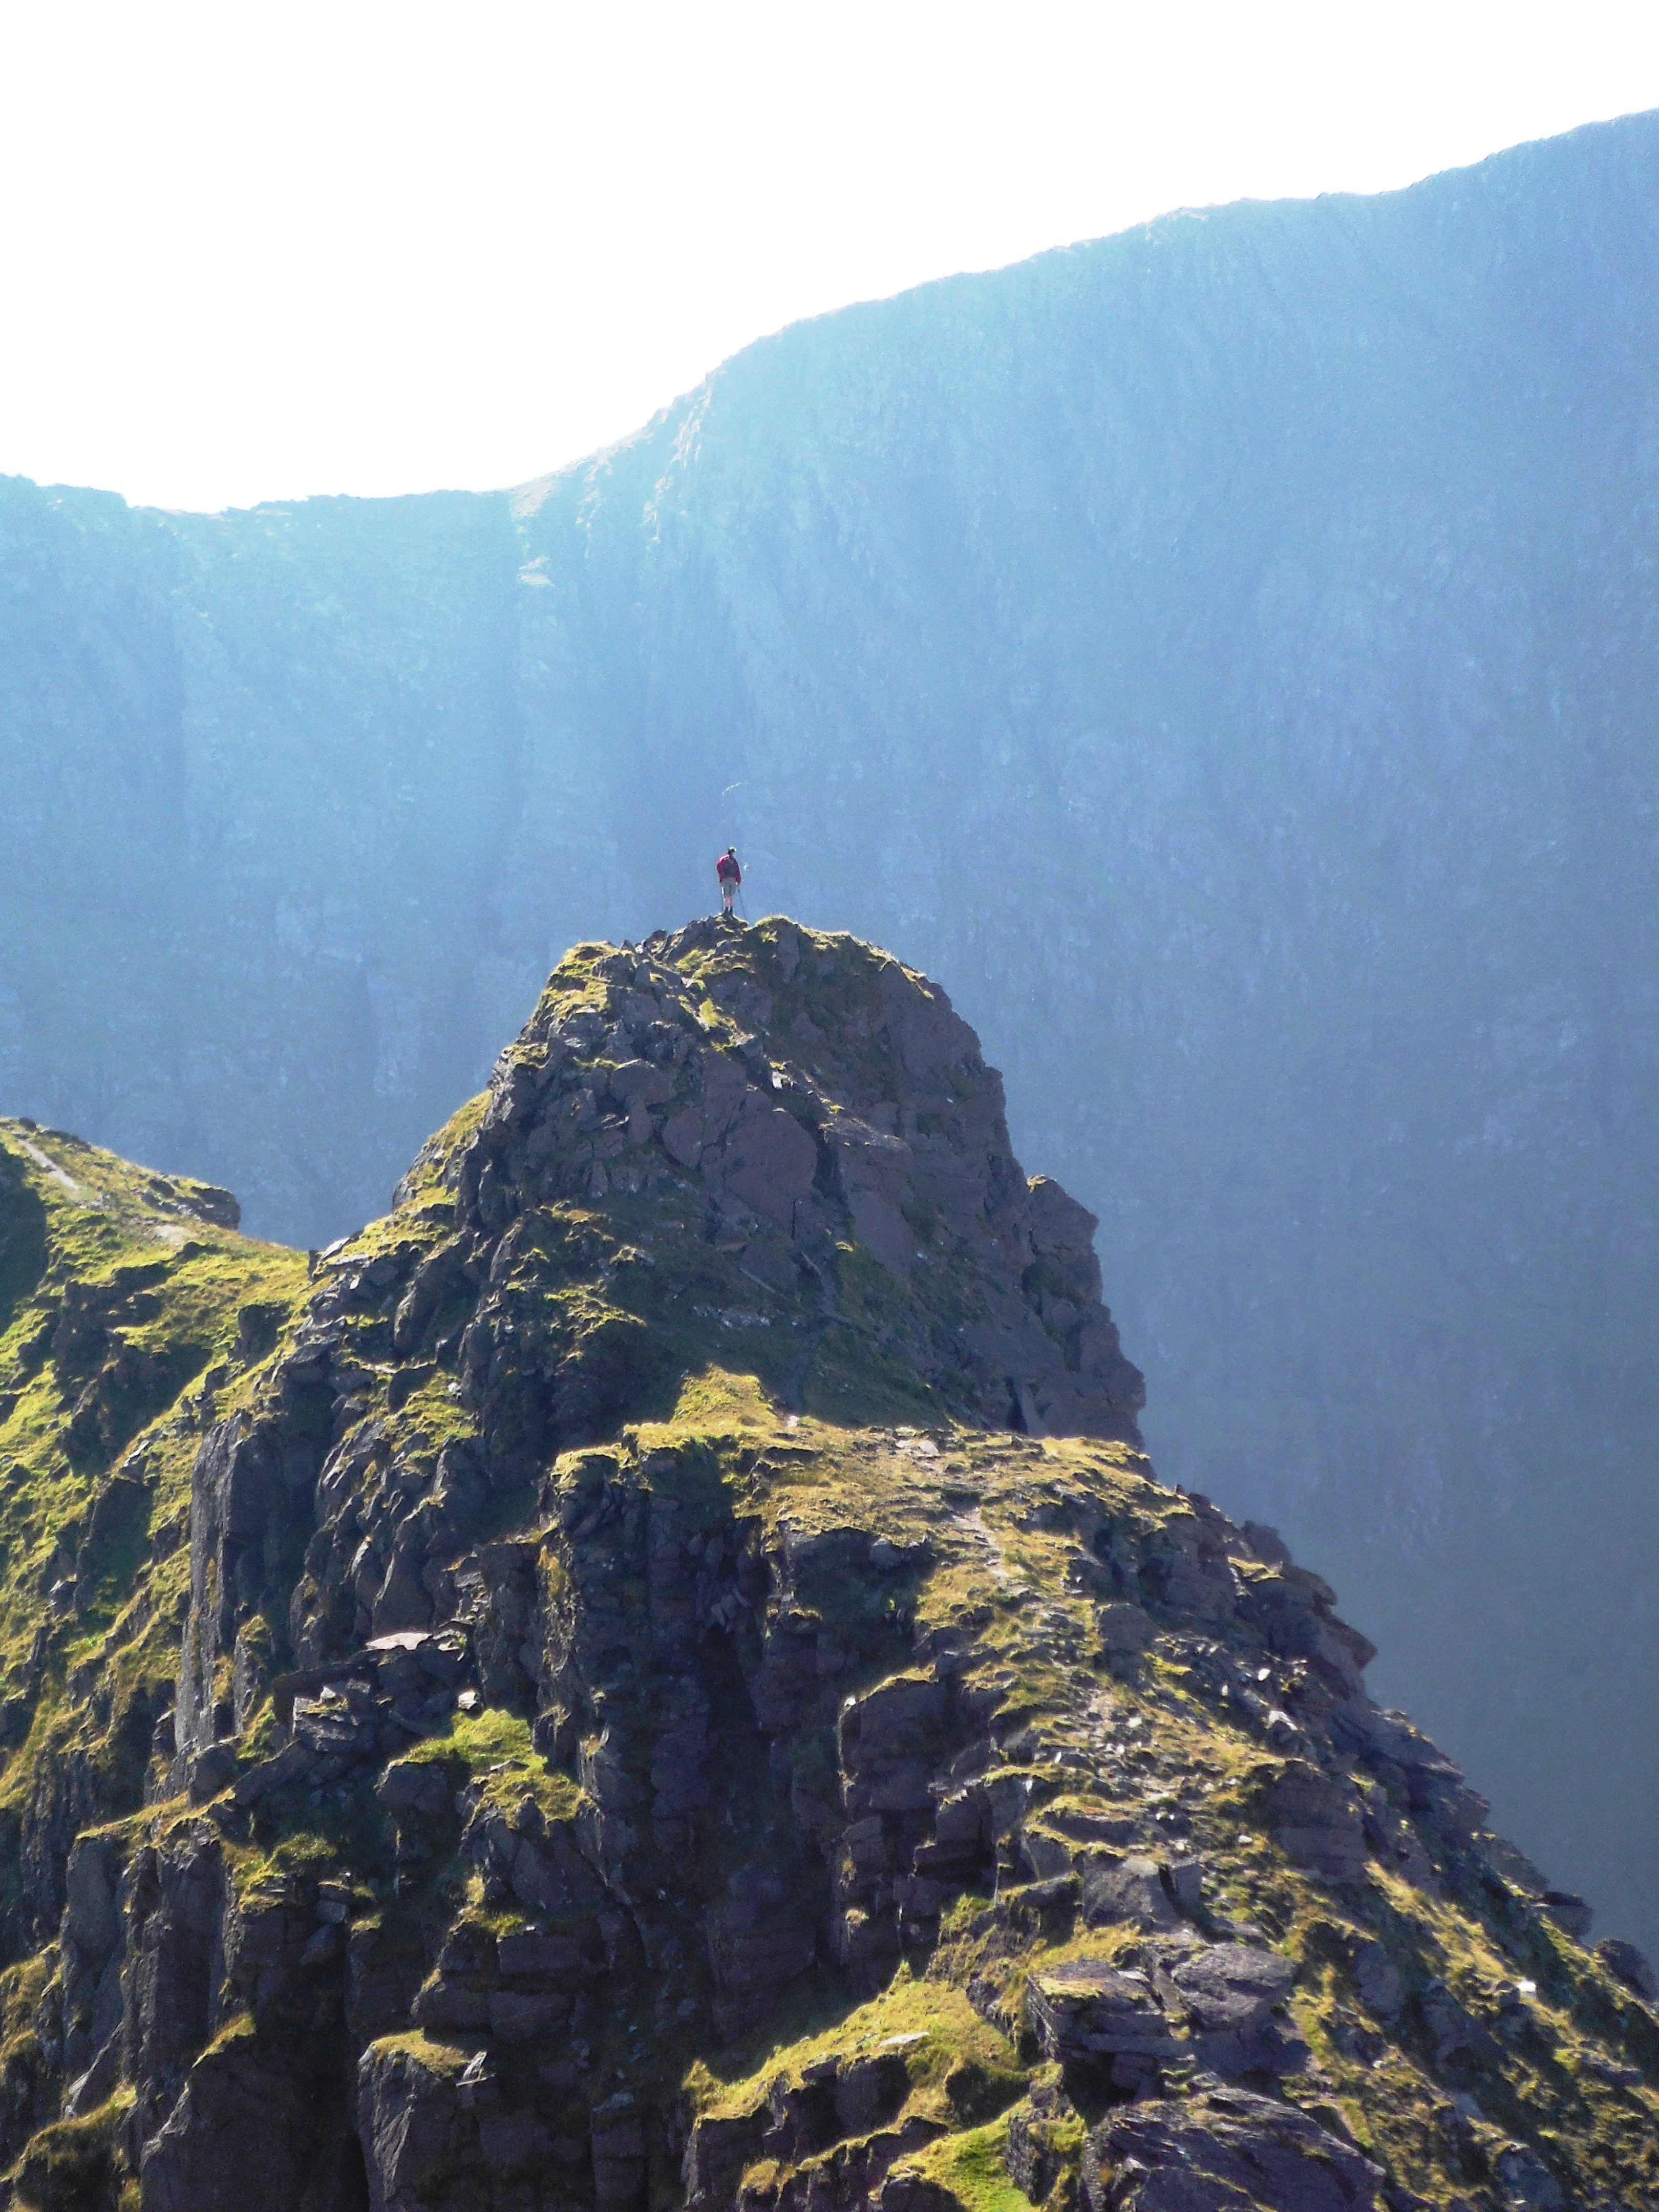 Scrambling the classic Binn Chaorach ridge